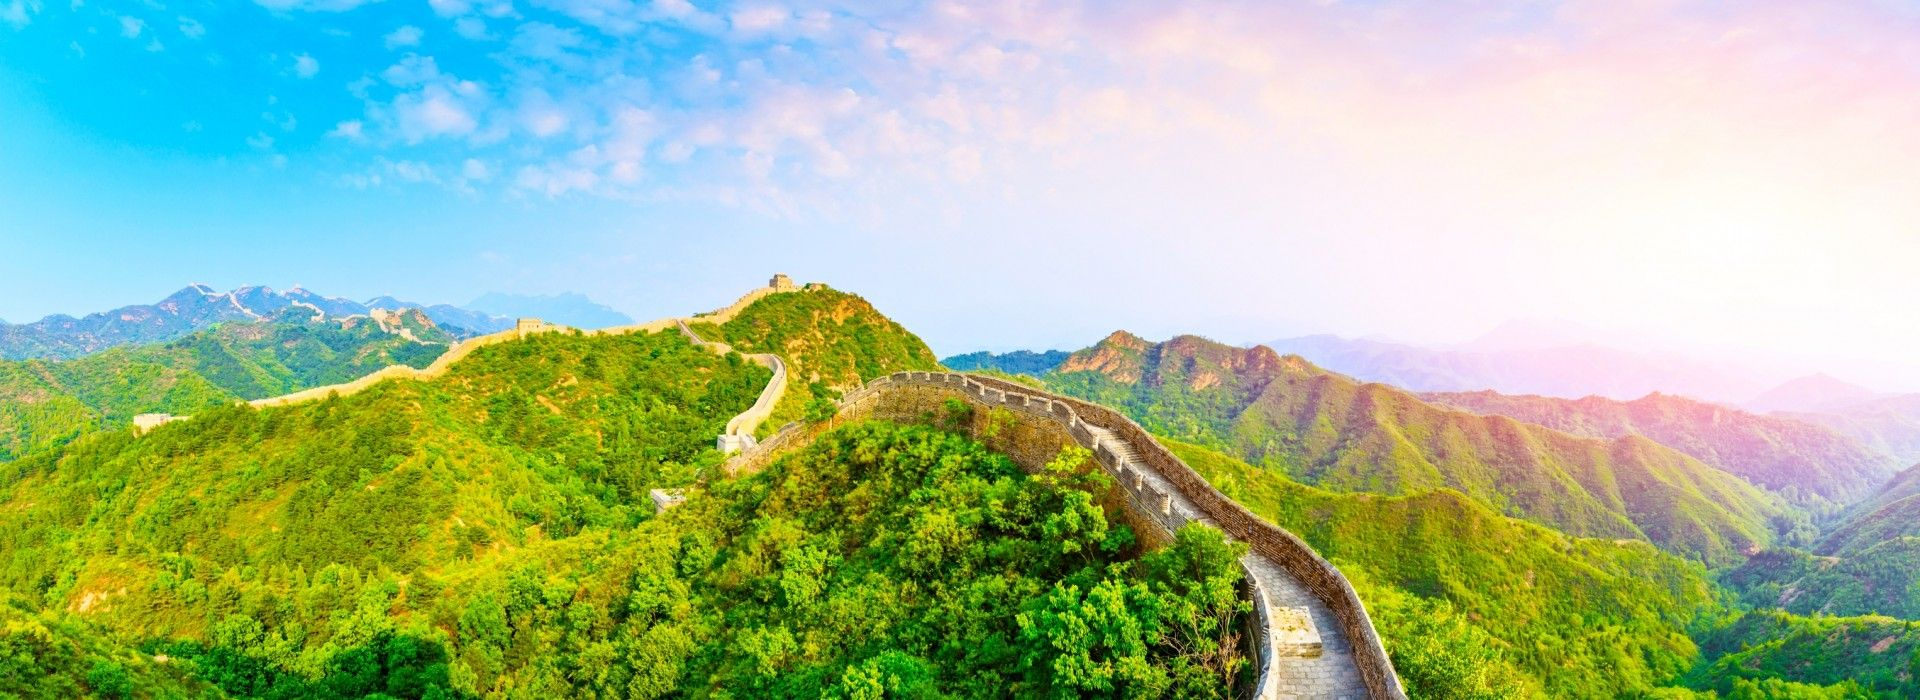 Cultural, religious and historic sites Tours in Xian